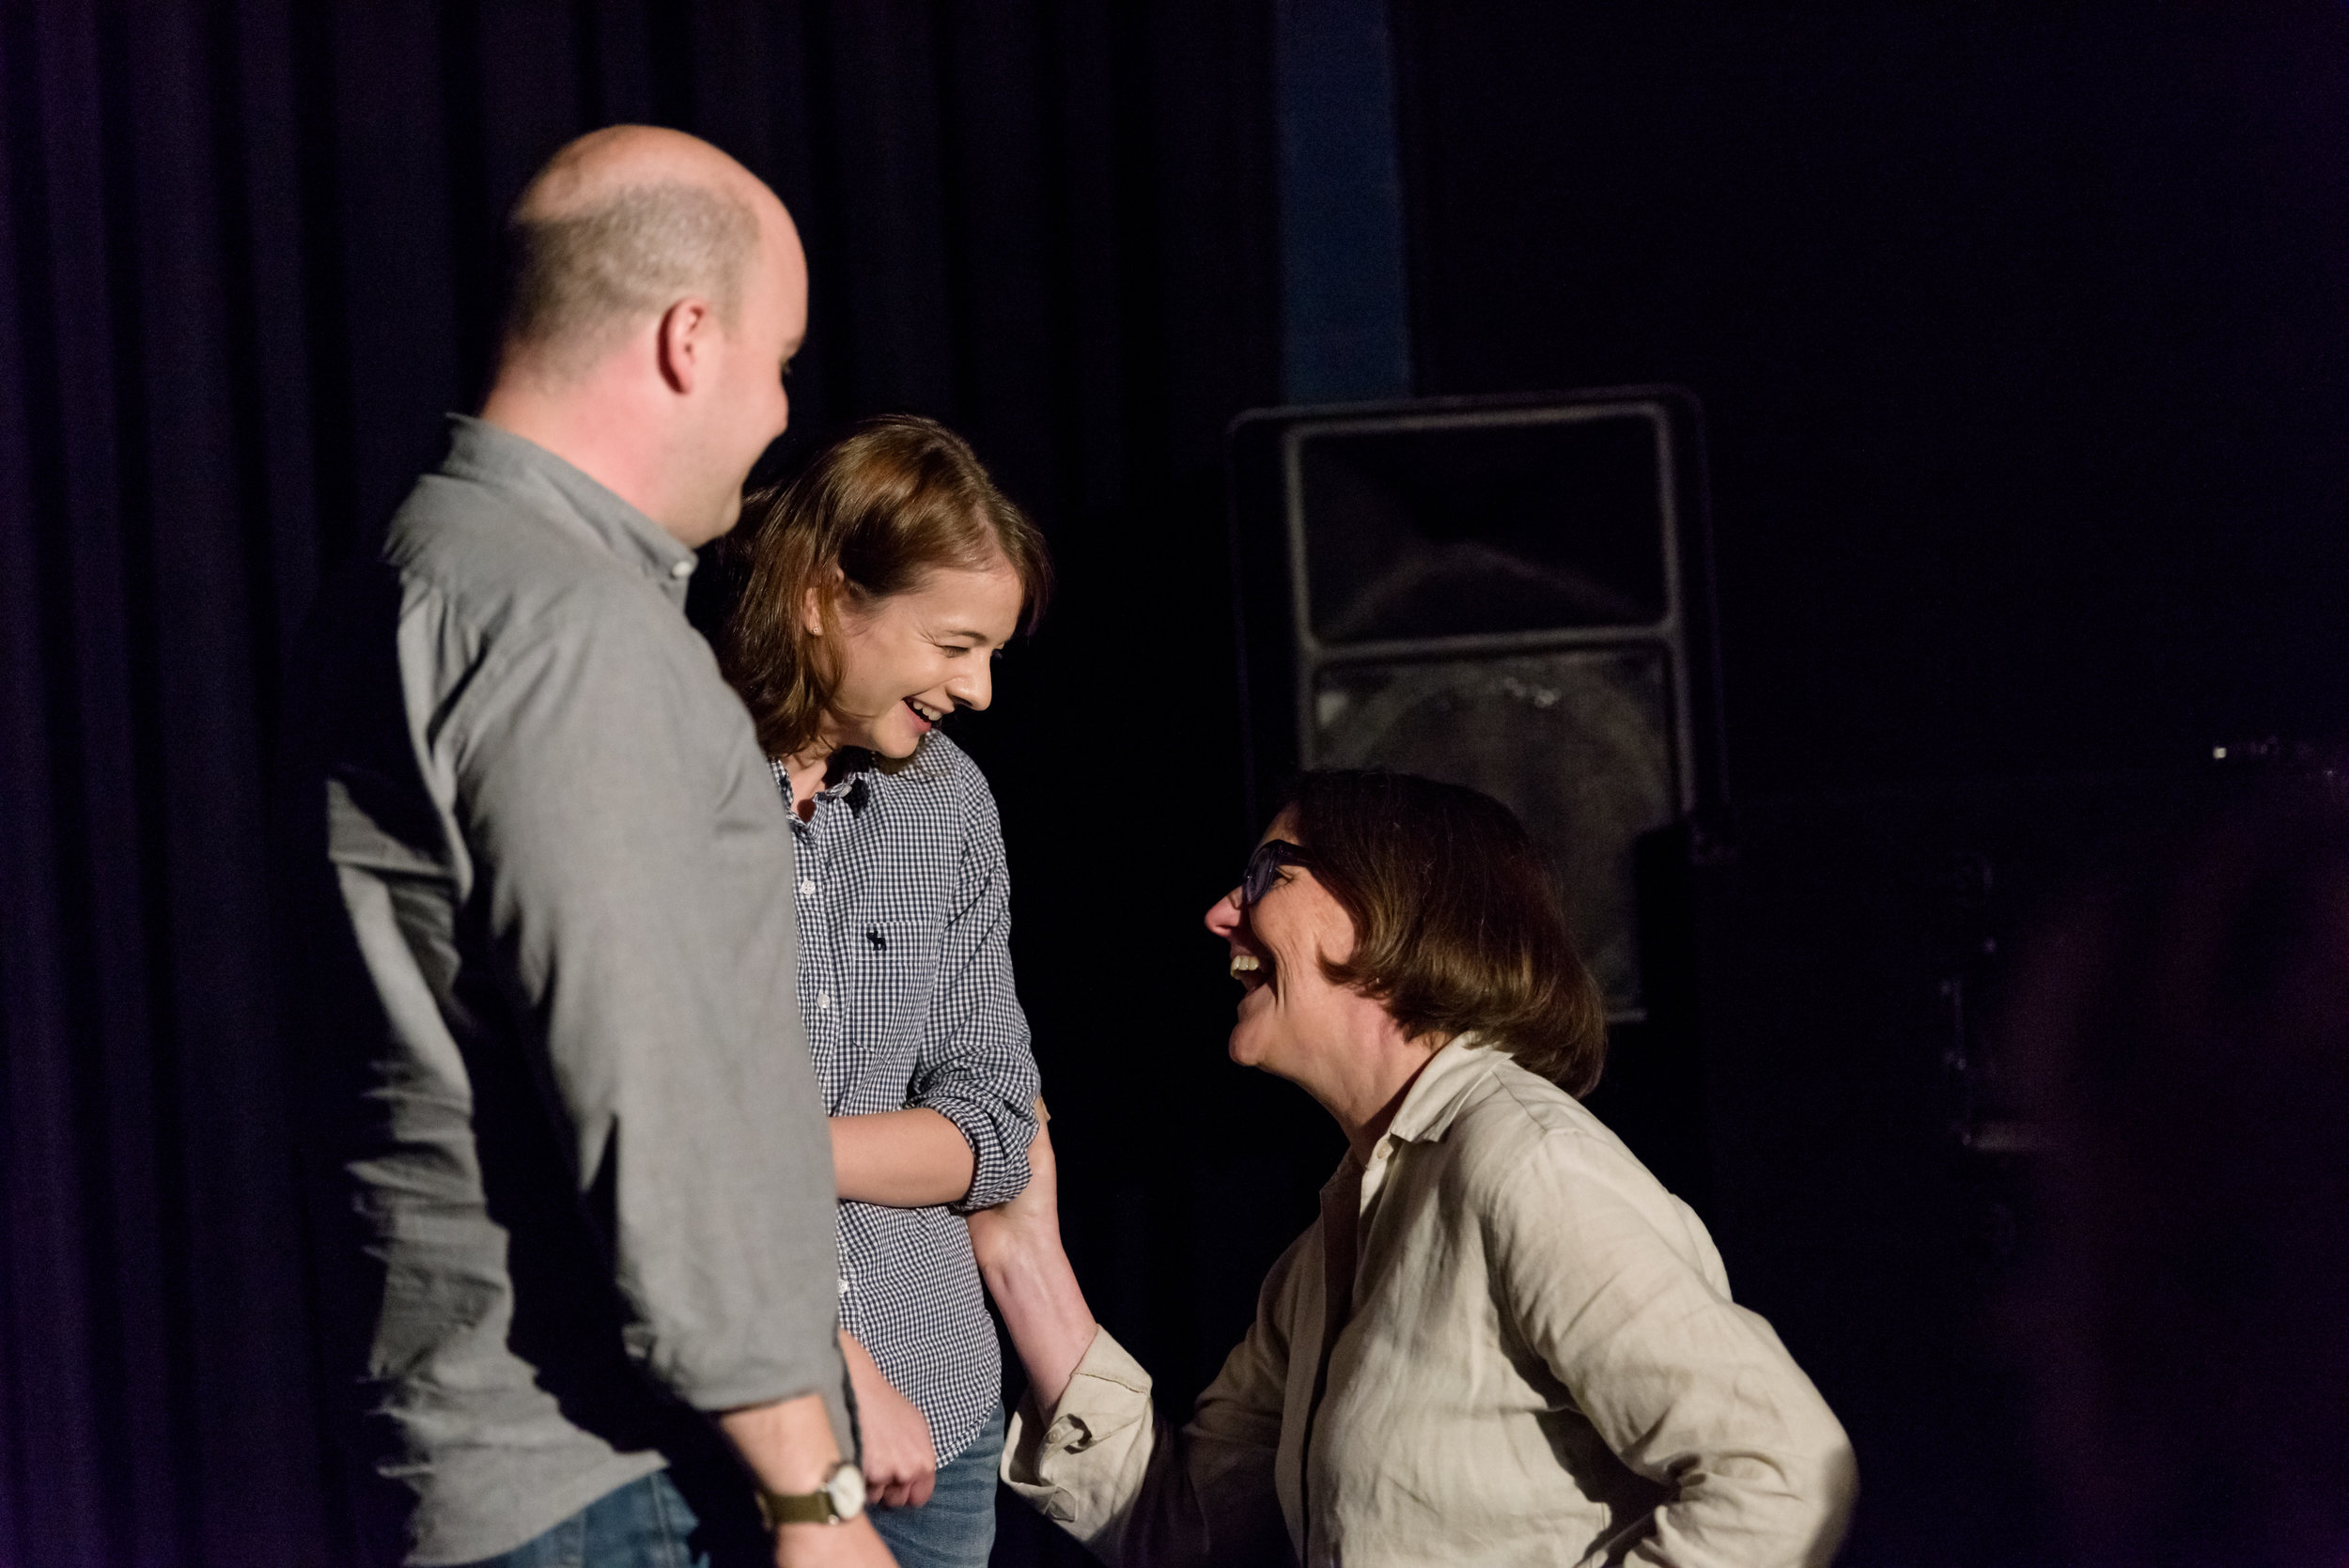 Margaret Rubega shares a laugh with Story Collider producers Erin Barker and Zack Stovall after her story at Real Art Ways in Hartford, CT. Photo by Nick Caito.